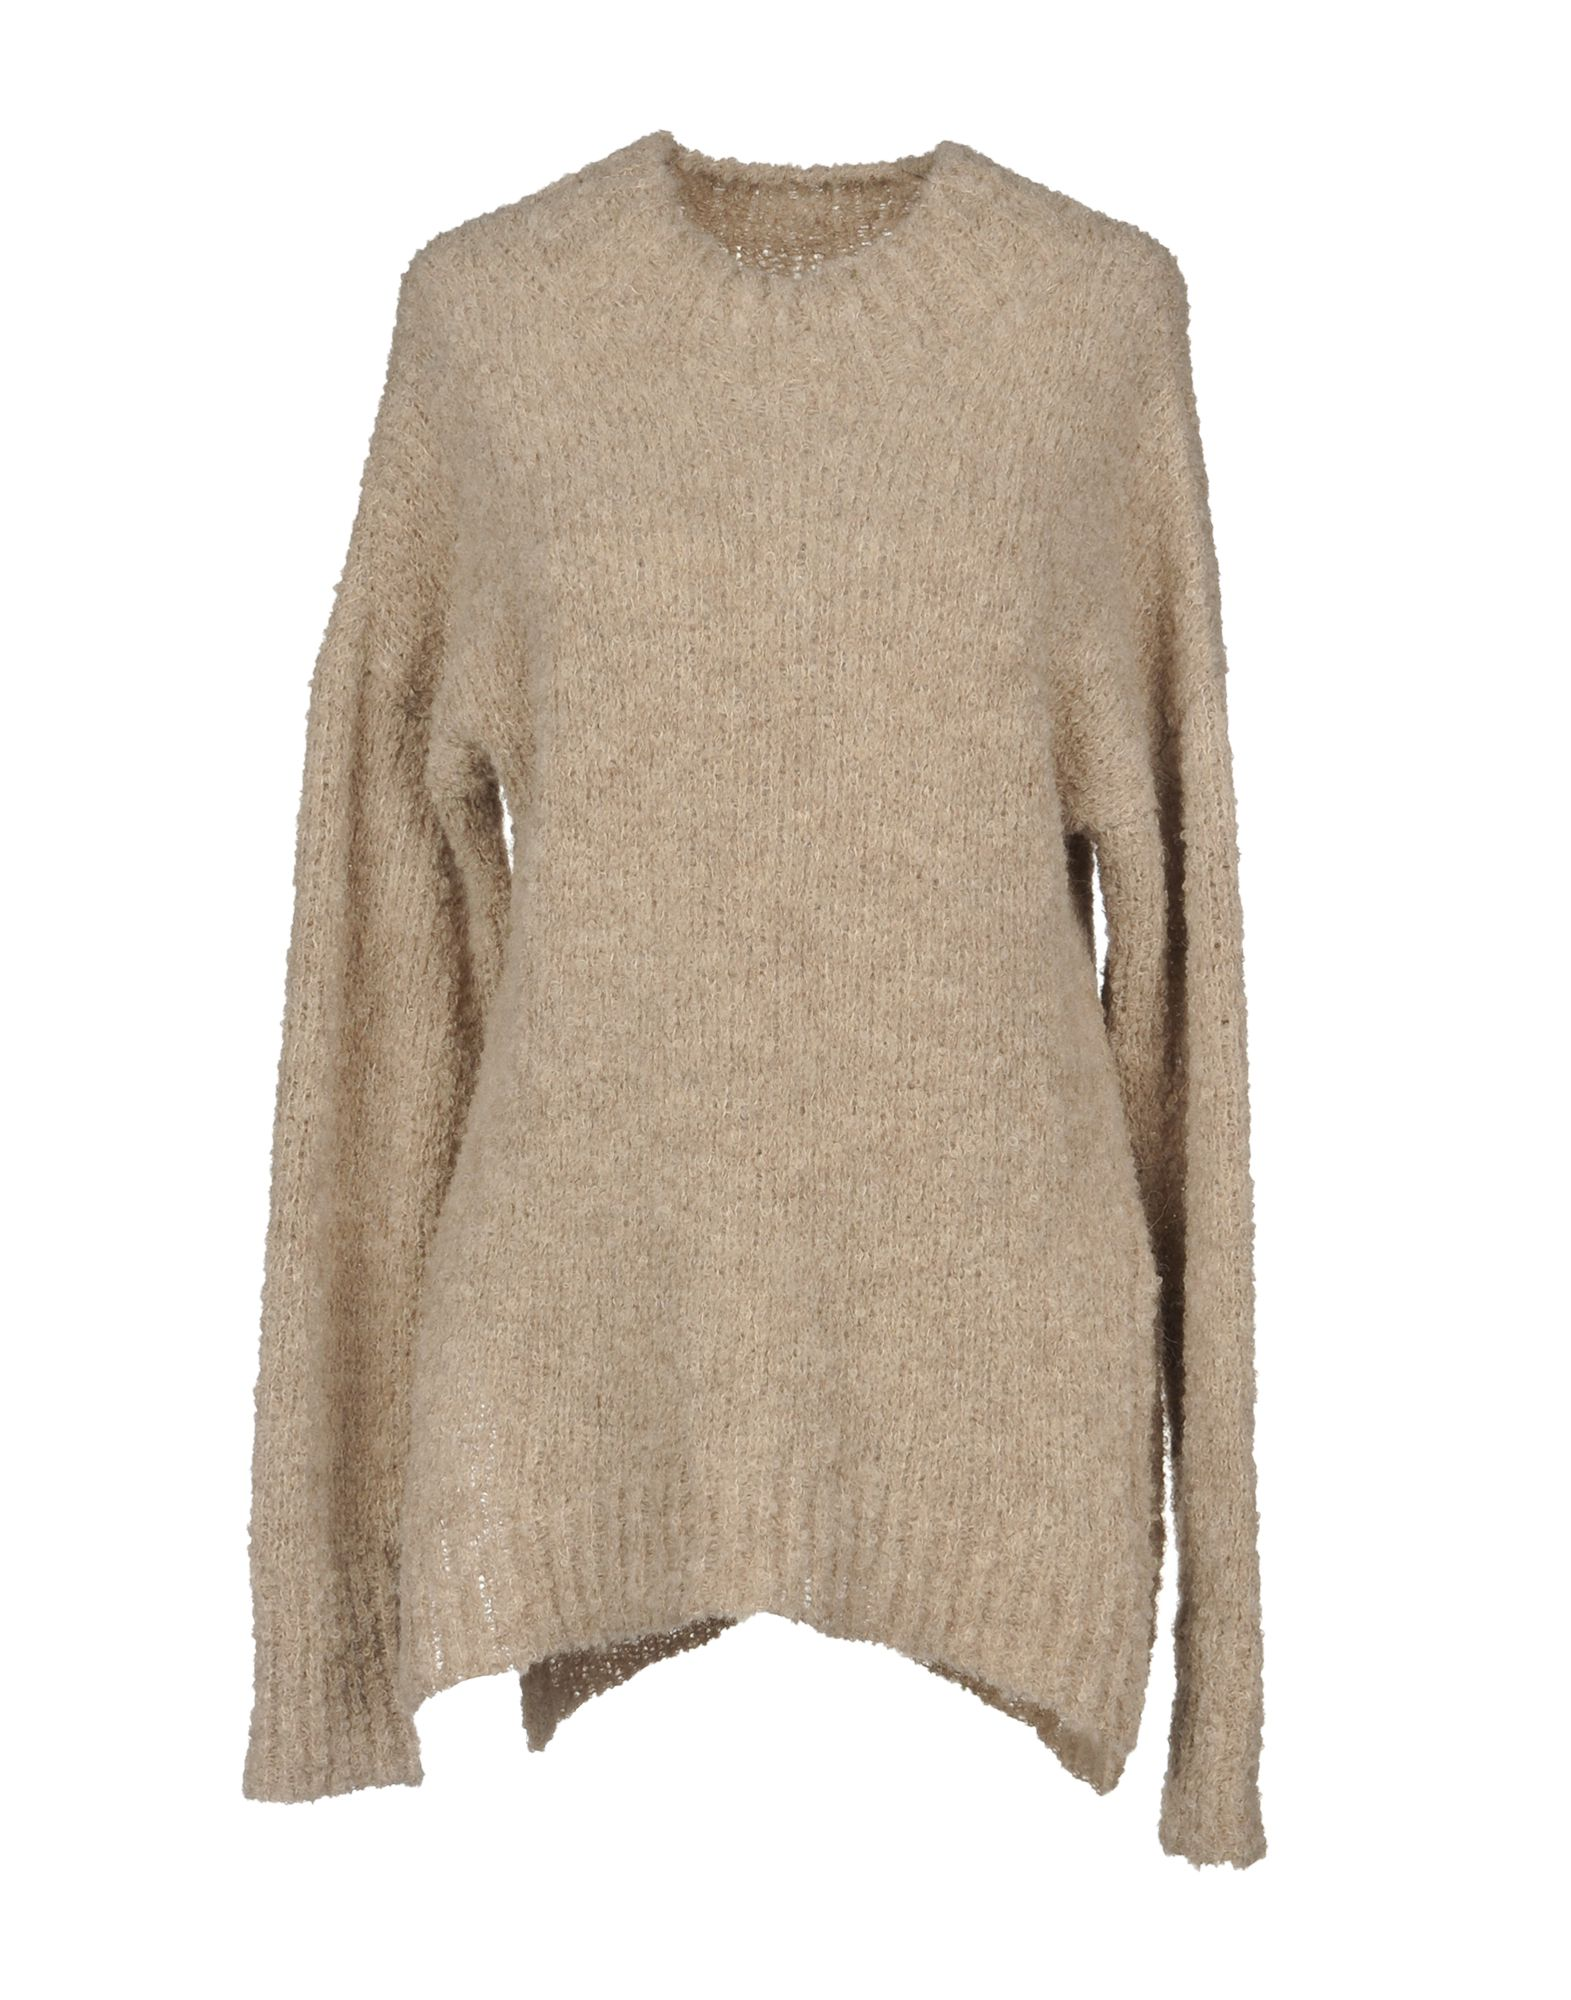 CHARLIE MAY Sweater in Beige